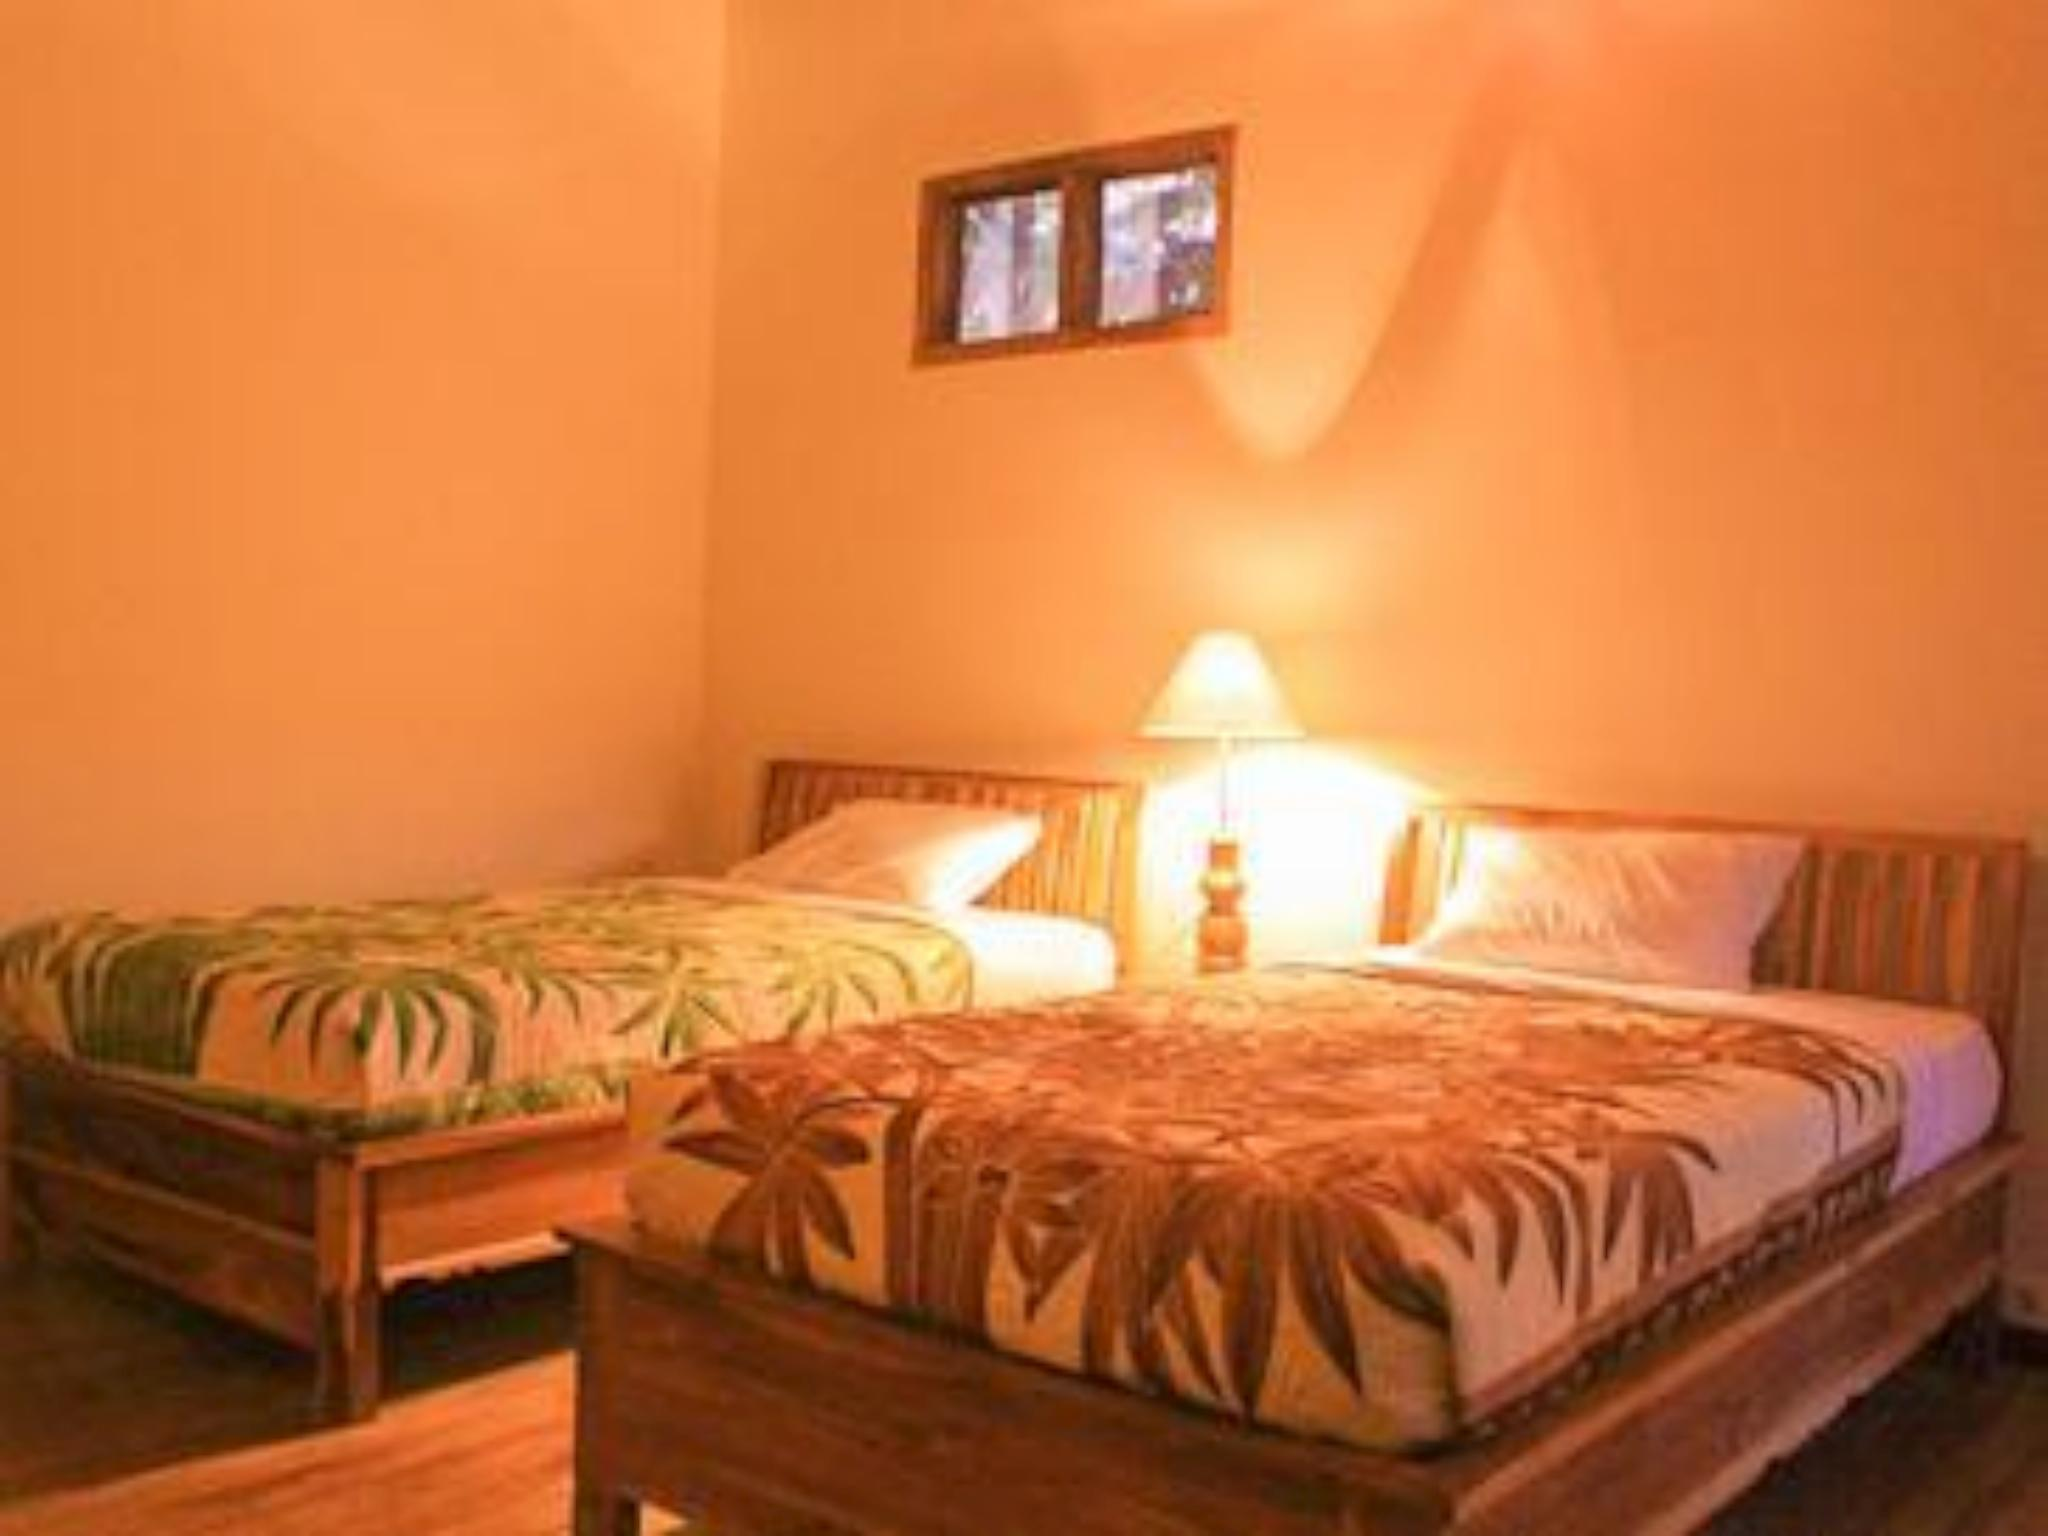 Kamar Suite Reges (Reges Suite Room)